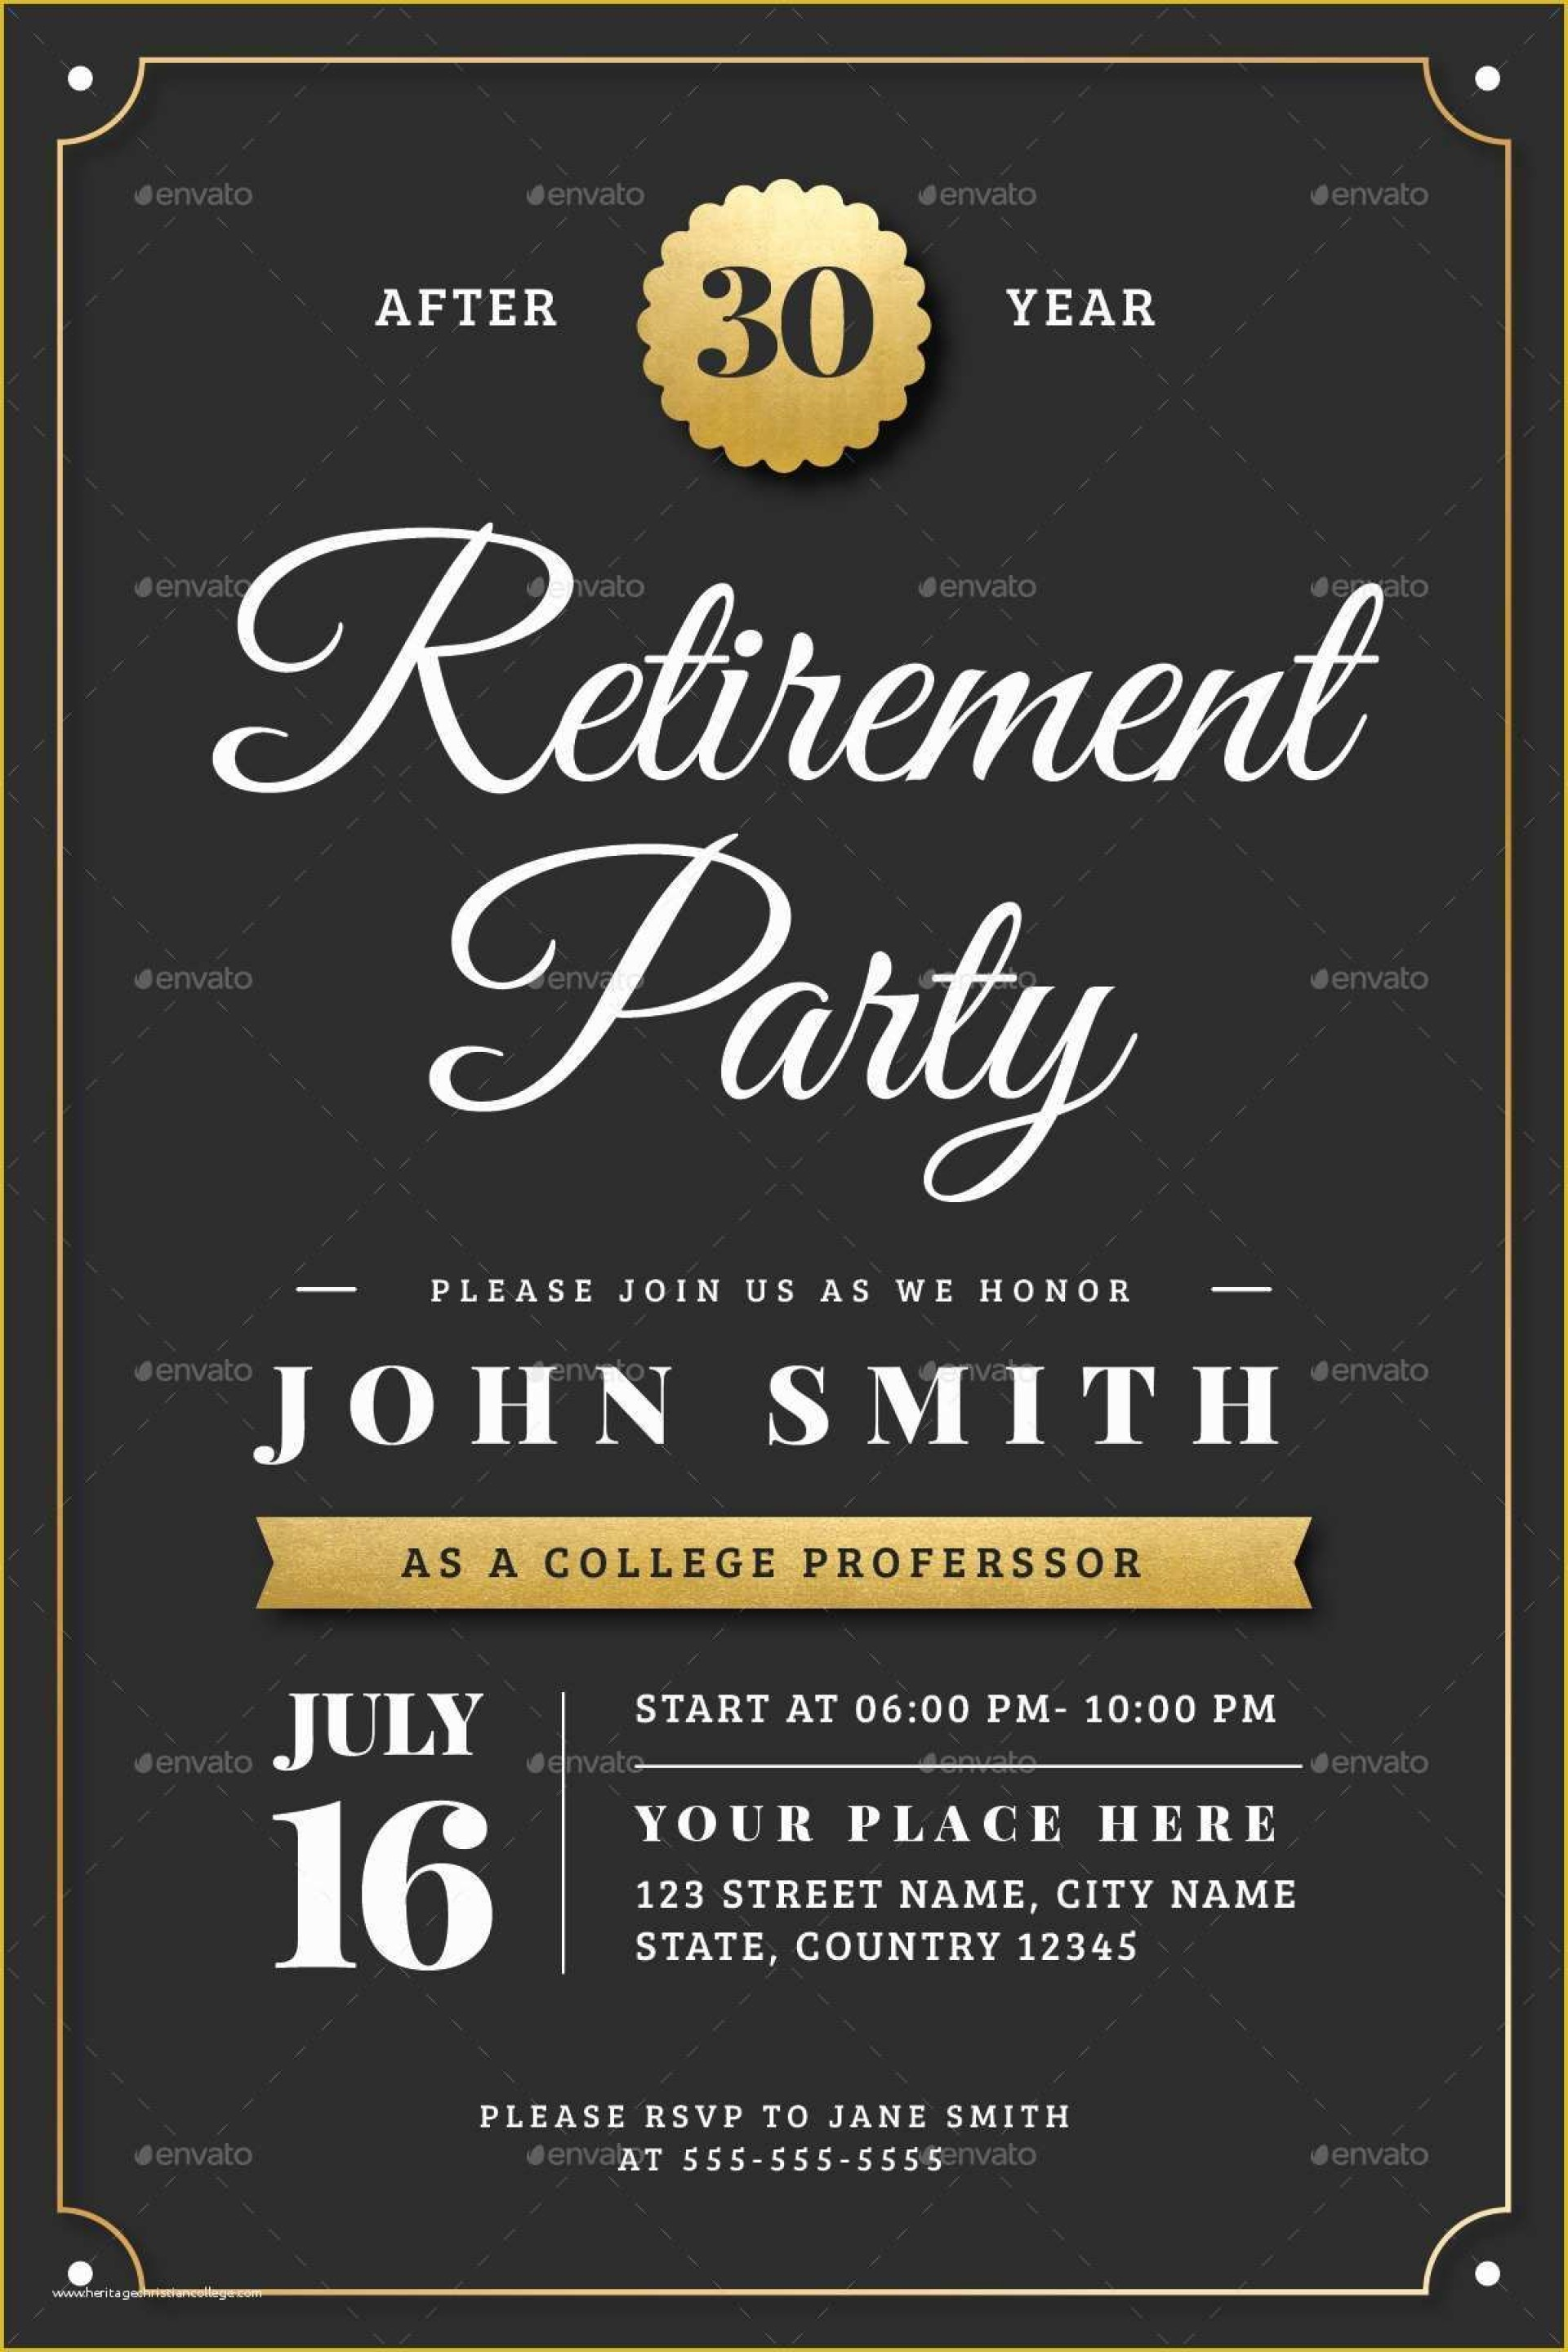 Party Announcement Template Free